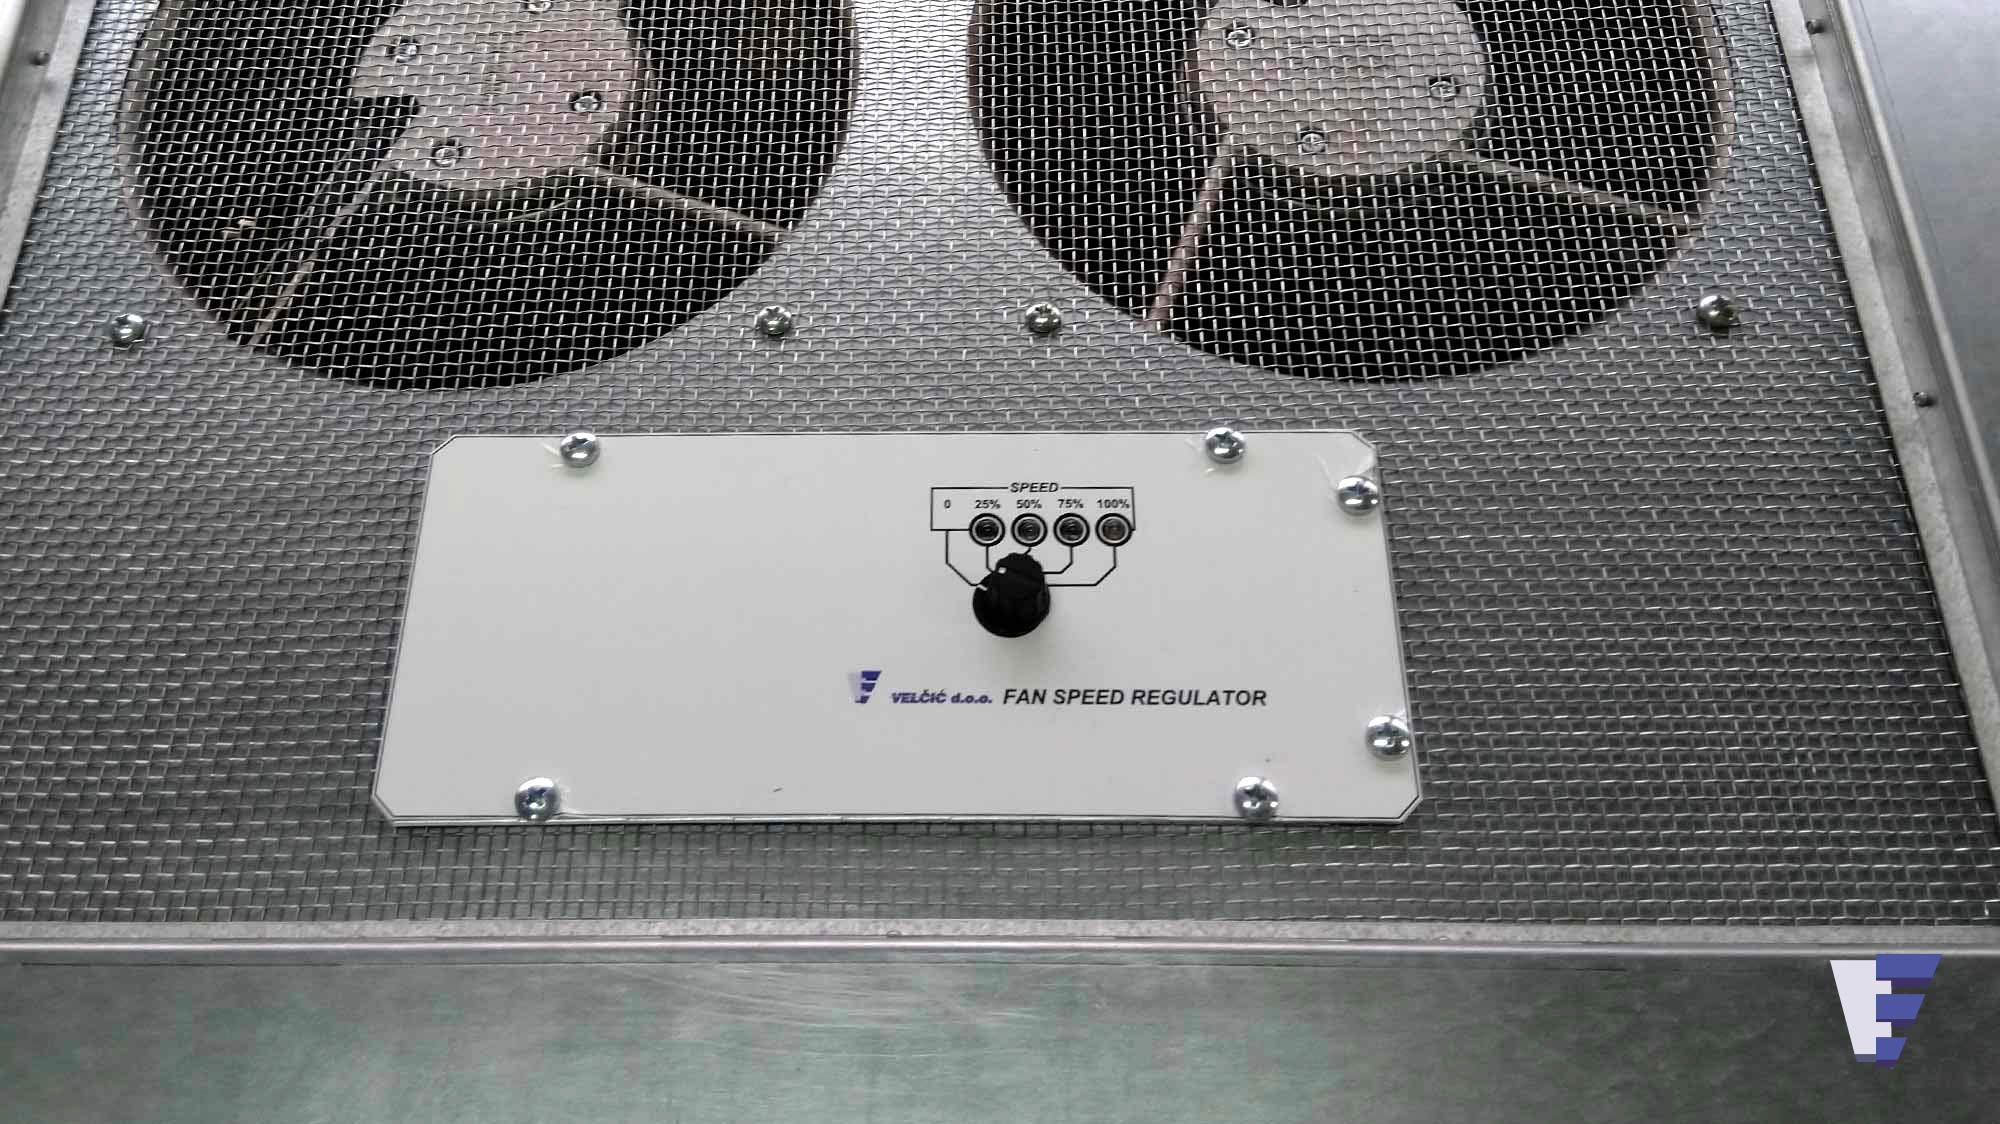 Velčić Ltd - Floor fan unit - whan there is not enough cooled